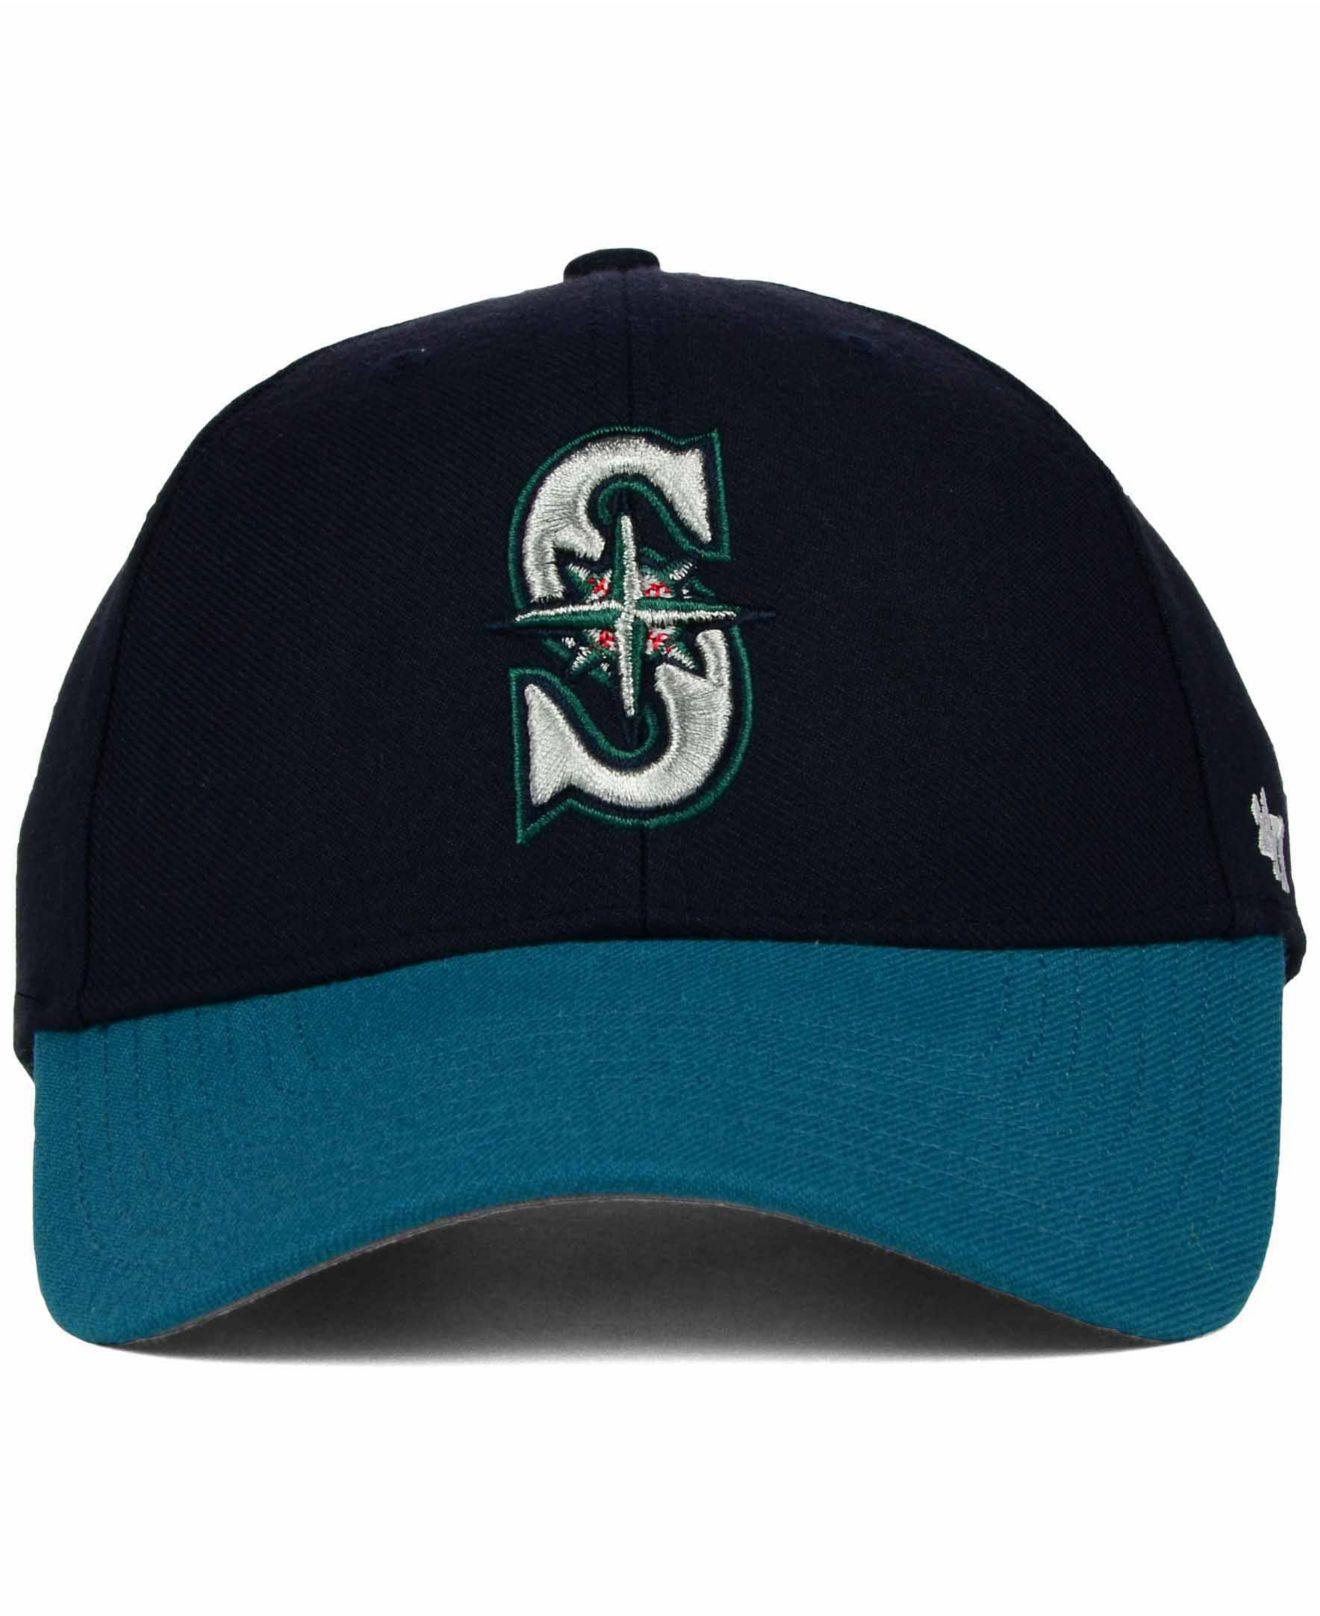 promo code 569b4 d2c15 Lyst - 47 Brand Seattle Mariners Mvp Curved Cap in Blue for Men